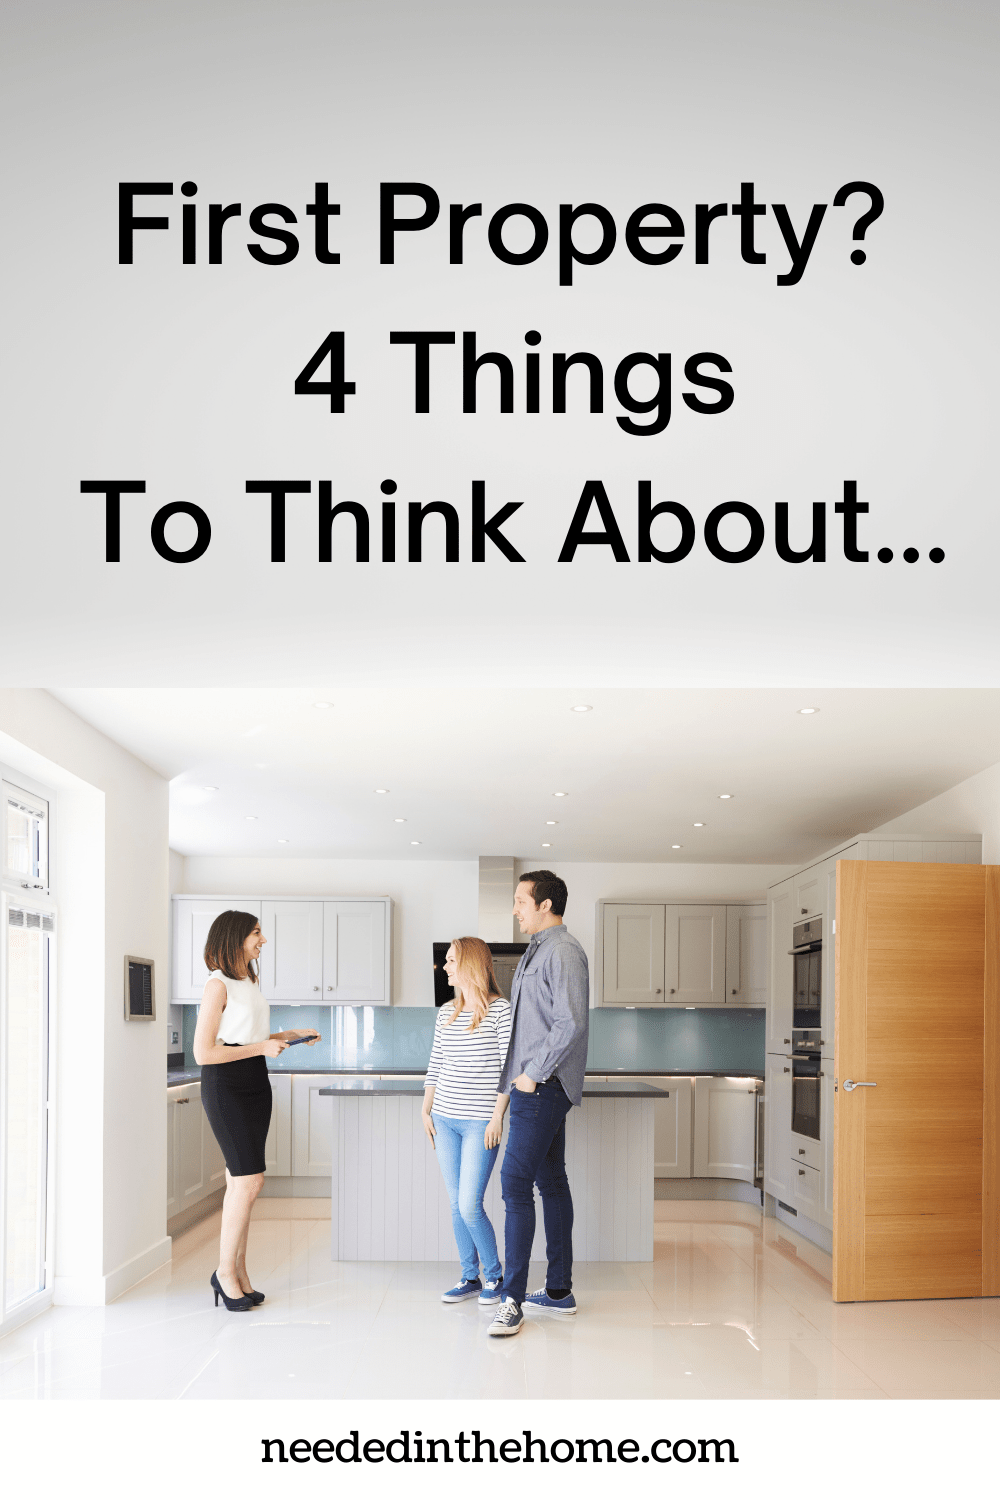 pinterest-pin-description First Property? 4 Things To Think About... realtor showing a couple the kitchen of a home for sale neededinthehome